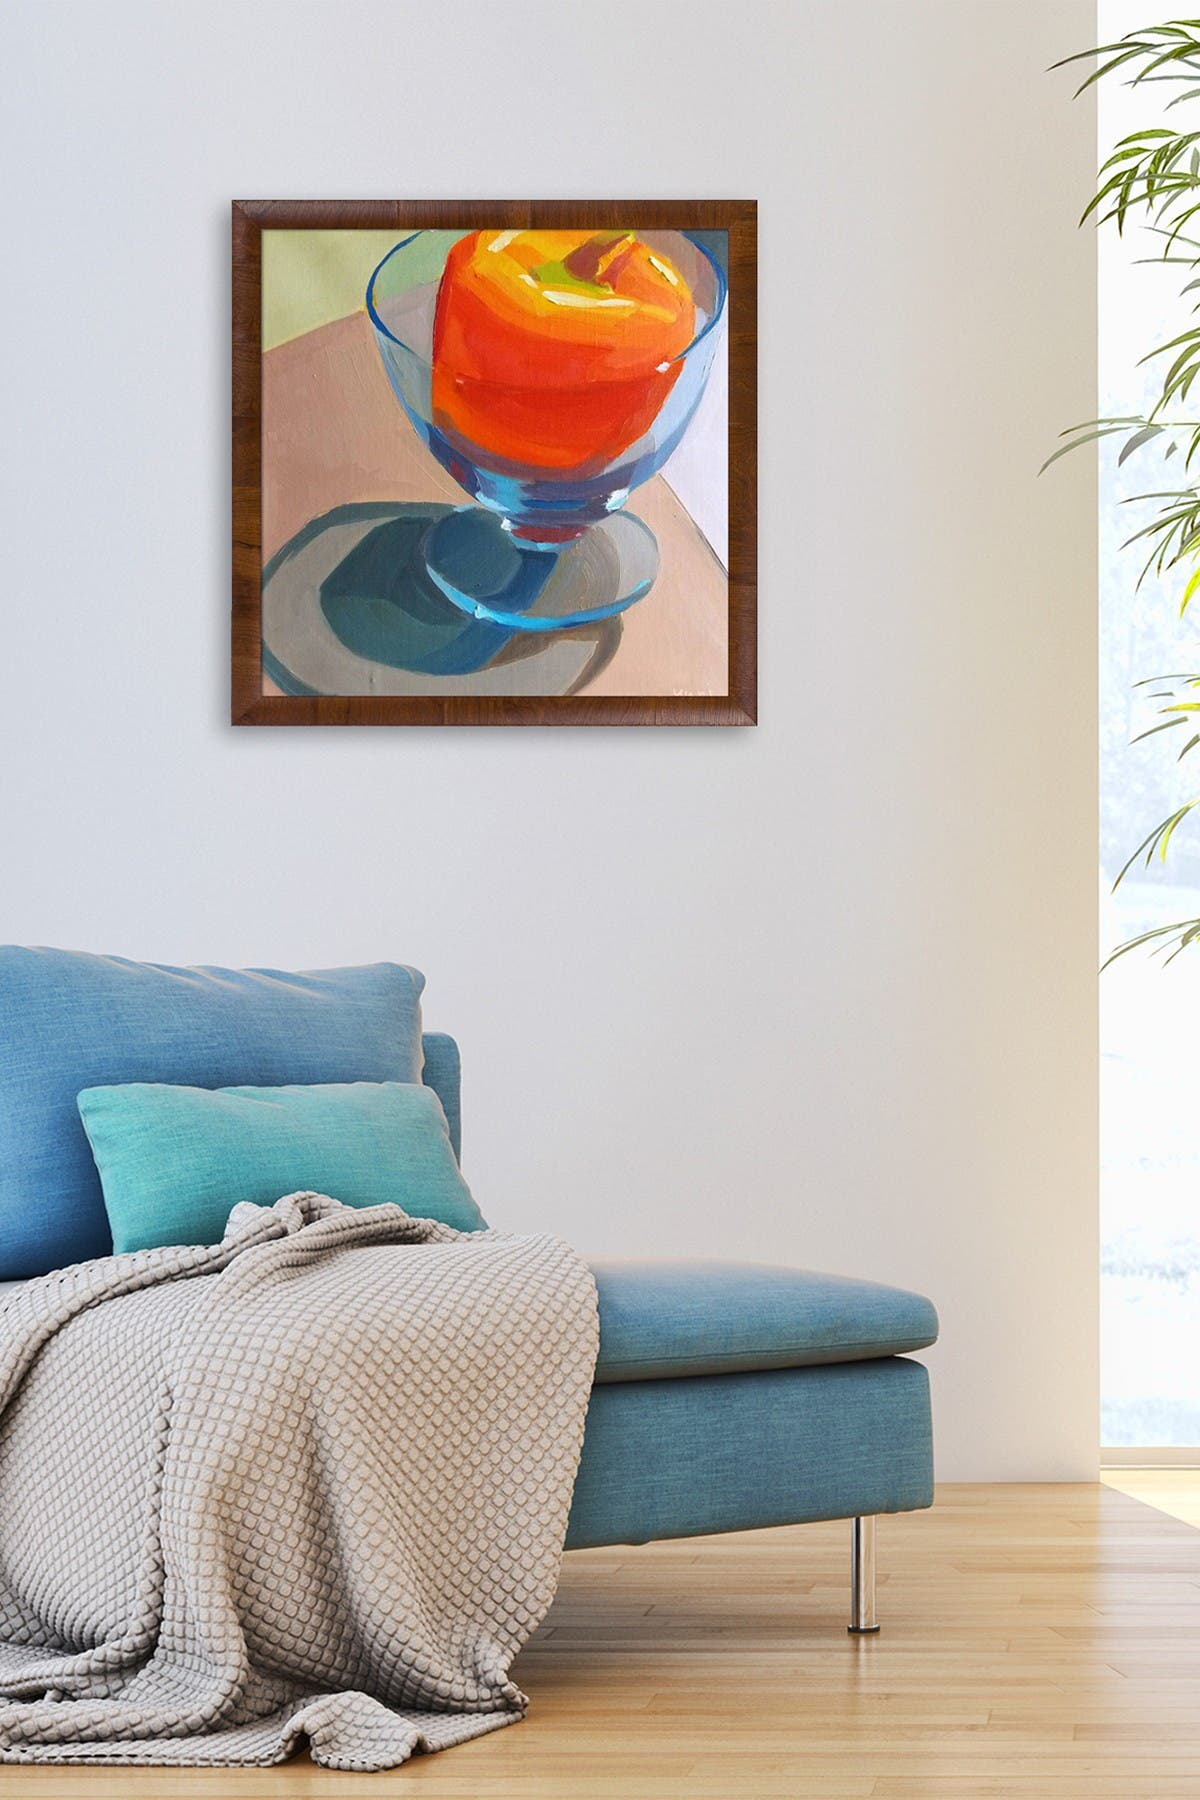 "Image of Overstock Art Orange Pepper in Blue Glass with Panzano Olivewood Frame - 27"" x 27"""